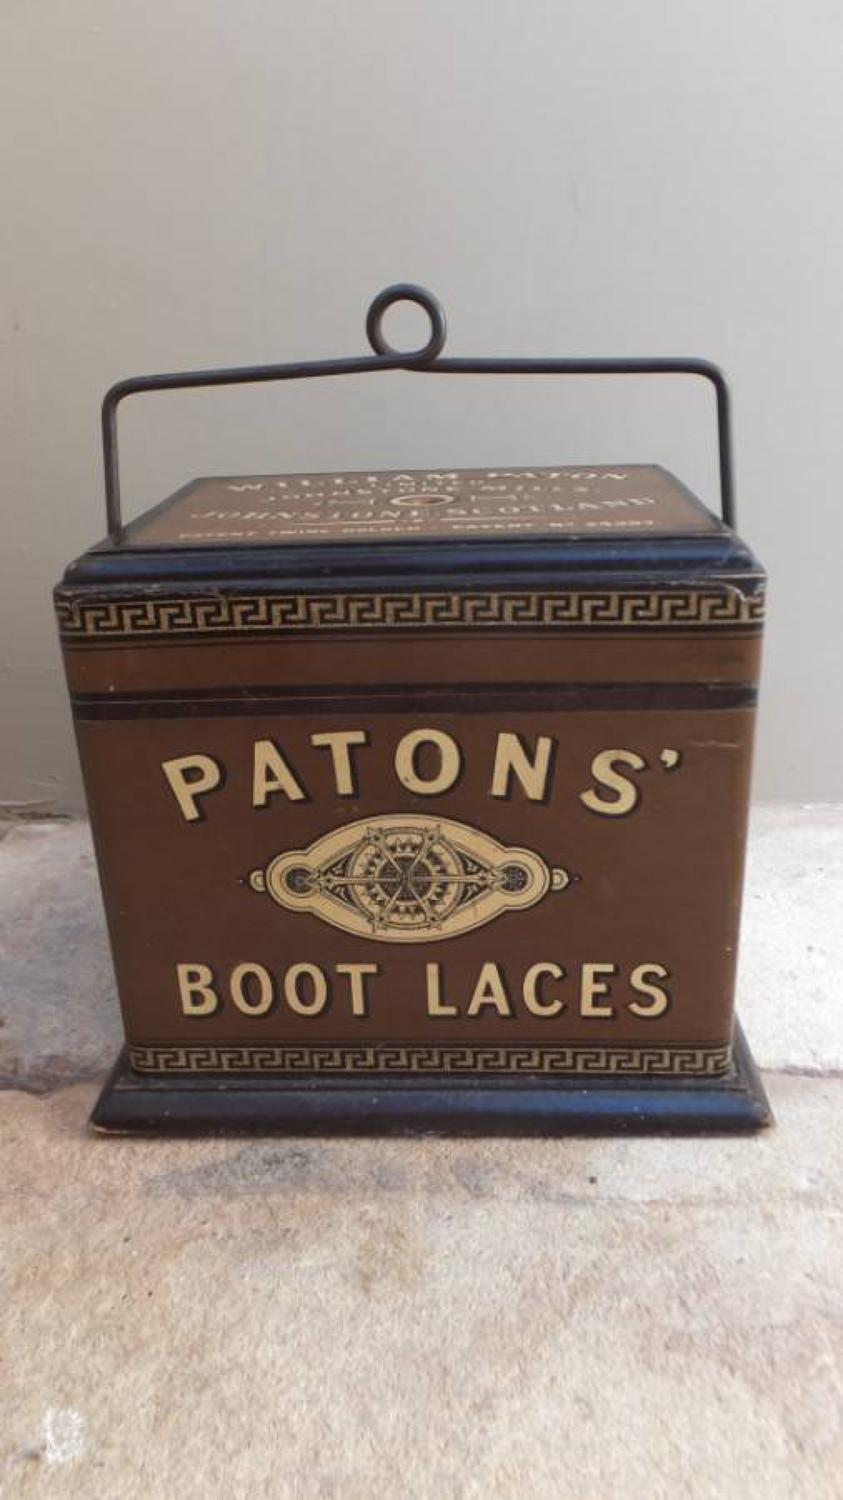 Edwardian Shops Advertising String Holder - Patons` Boot Laces